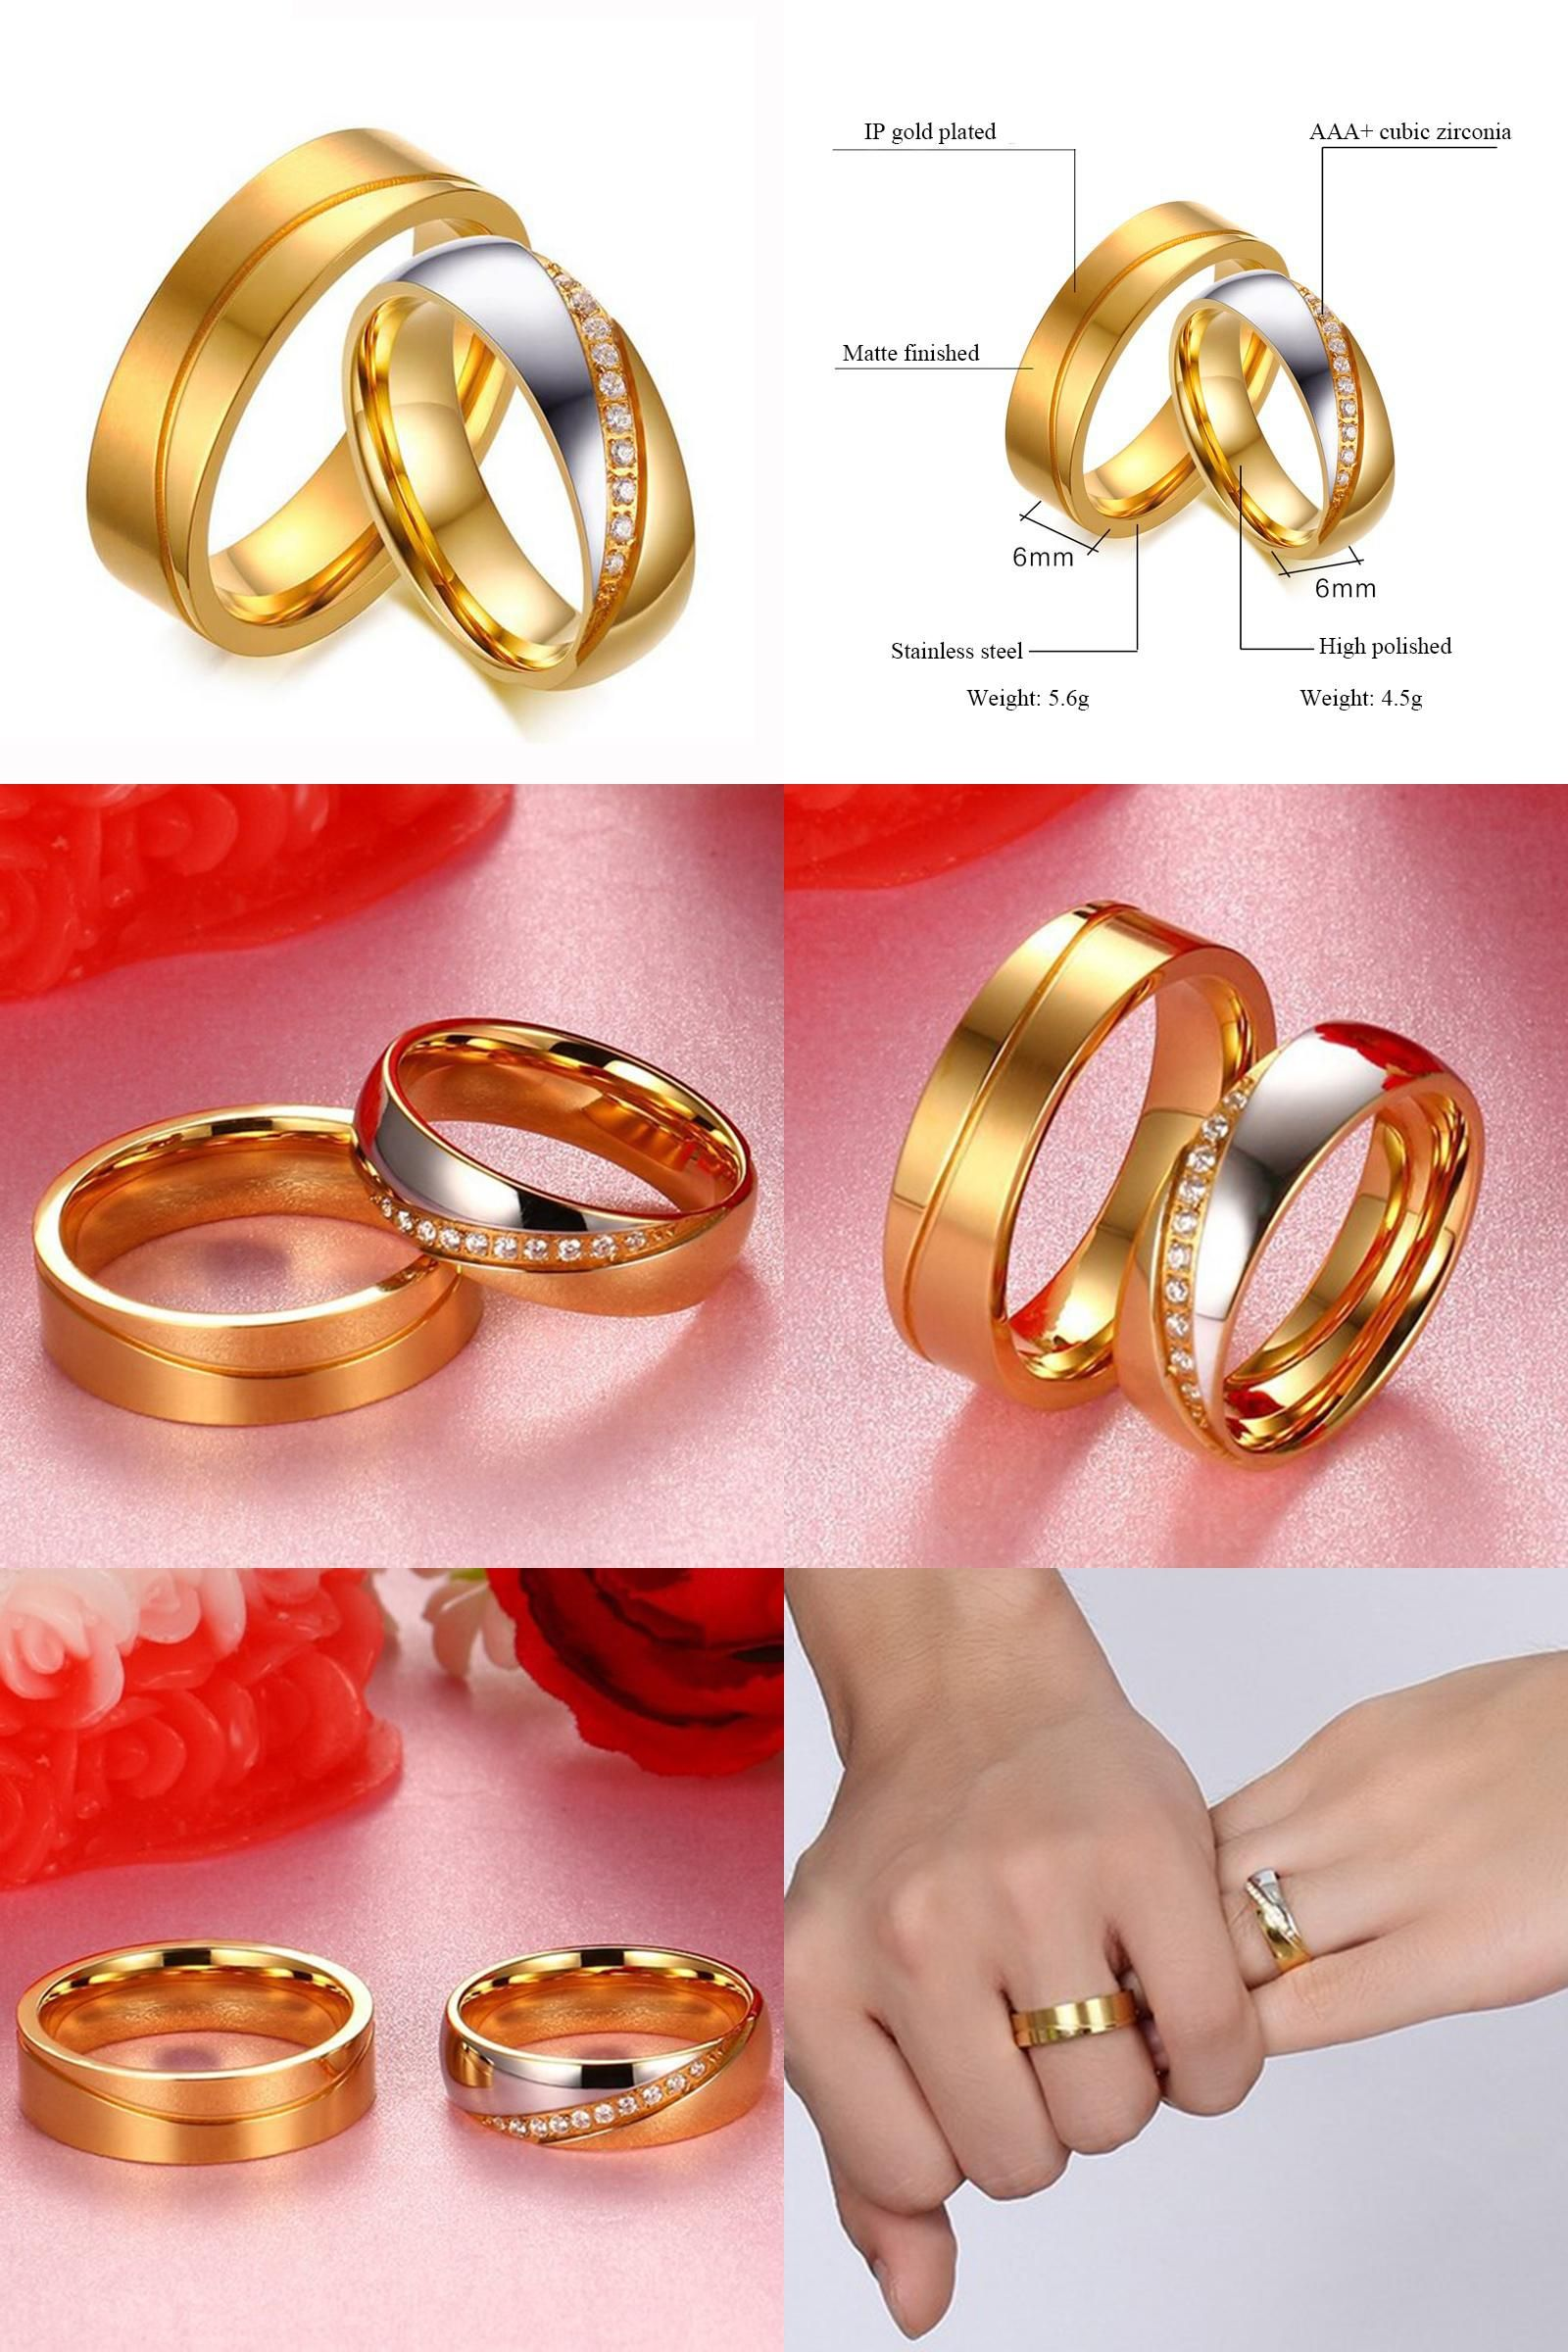 size products retailers the suppliers carat manufacturers jewellery pin marketplace at gold quality online for of adjustable and baby happy bangle yellow